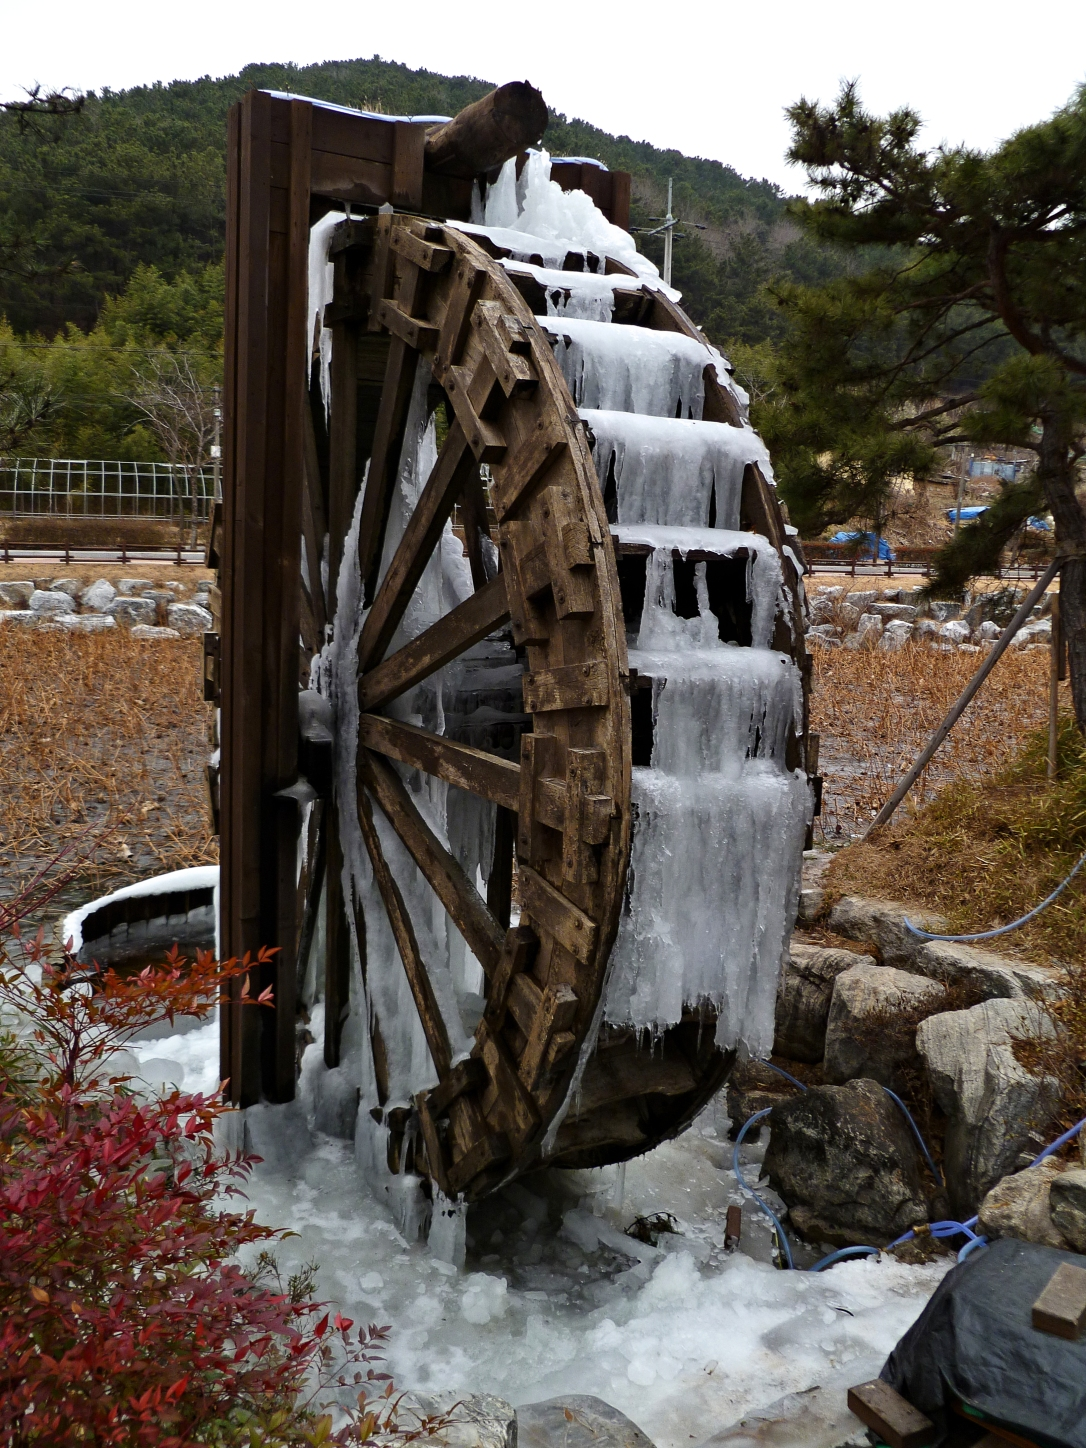 Frozen_Water_Wheel_Close-up_at_Seonam_Lake_Park,_Ulsan